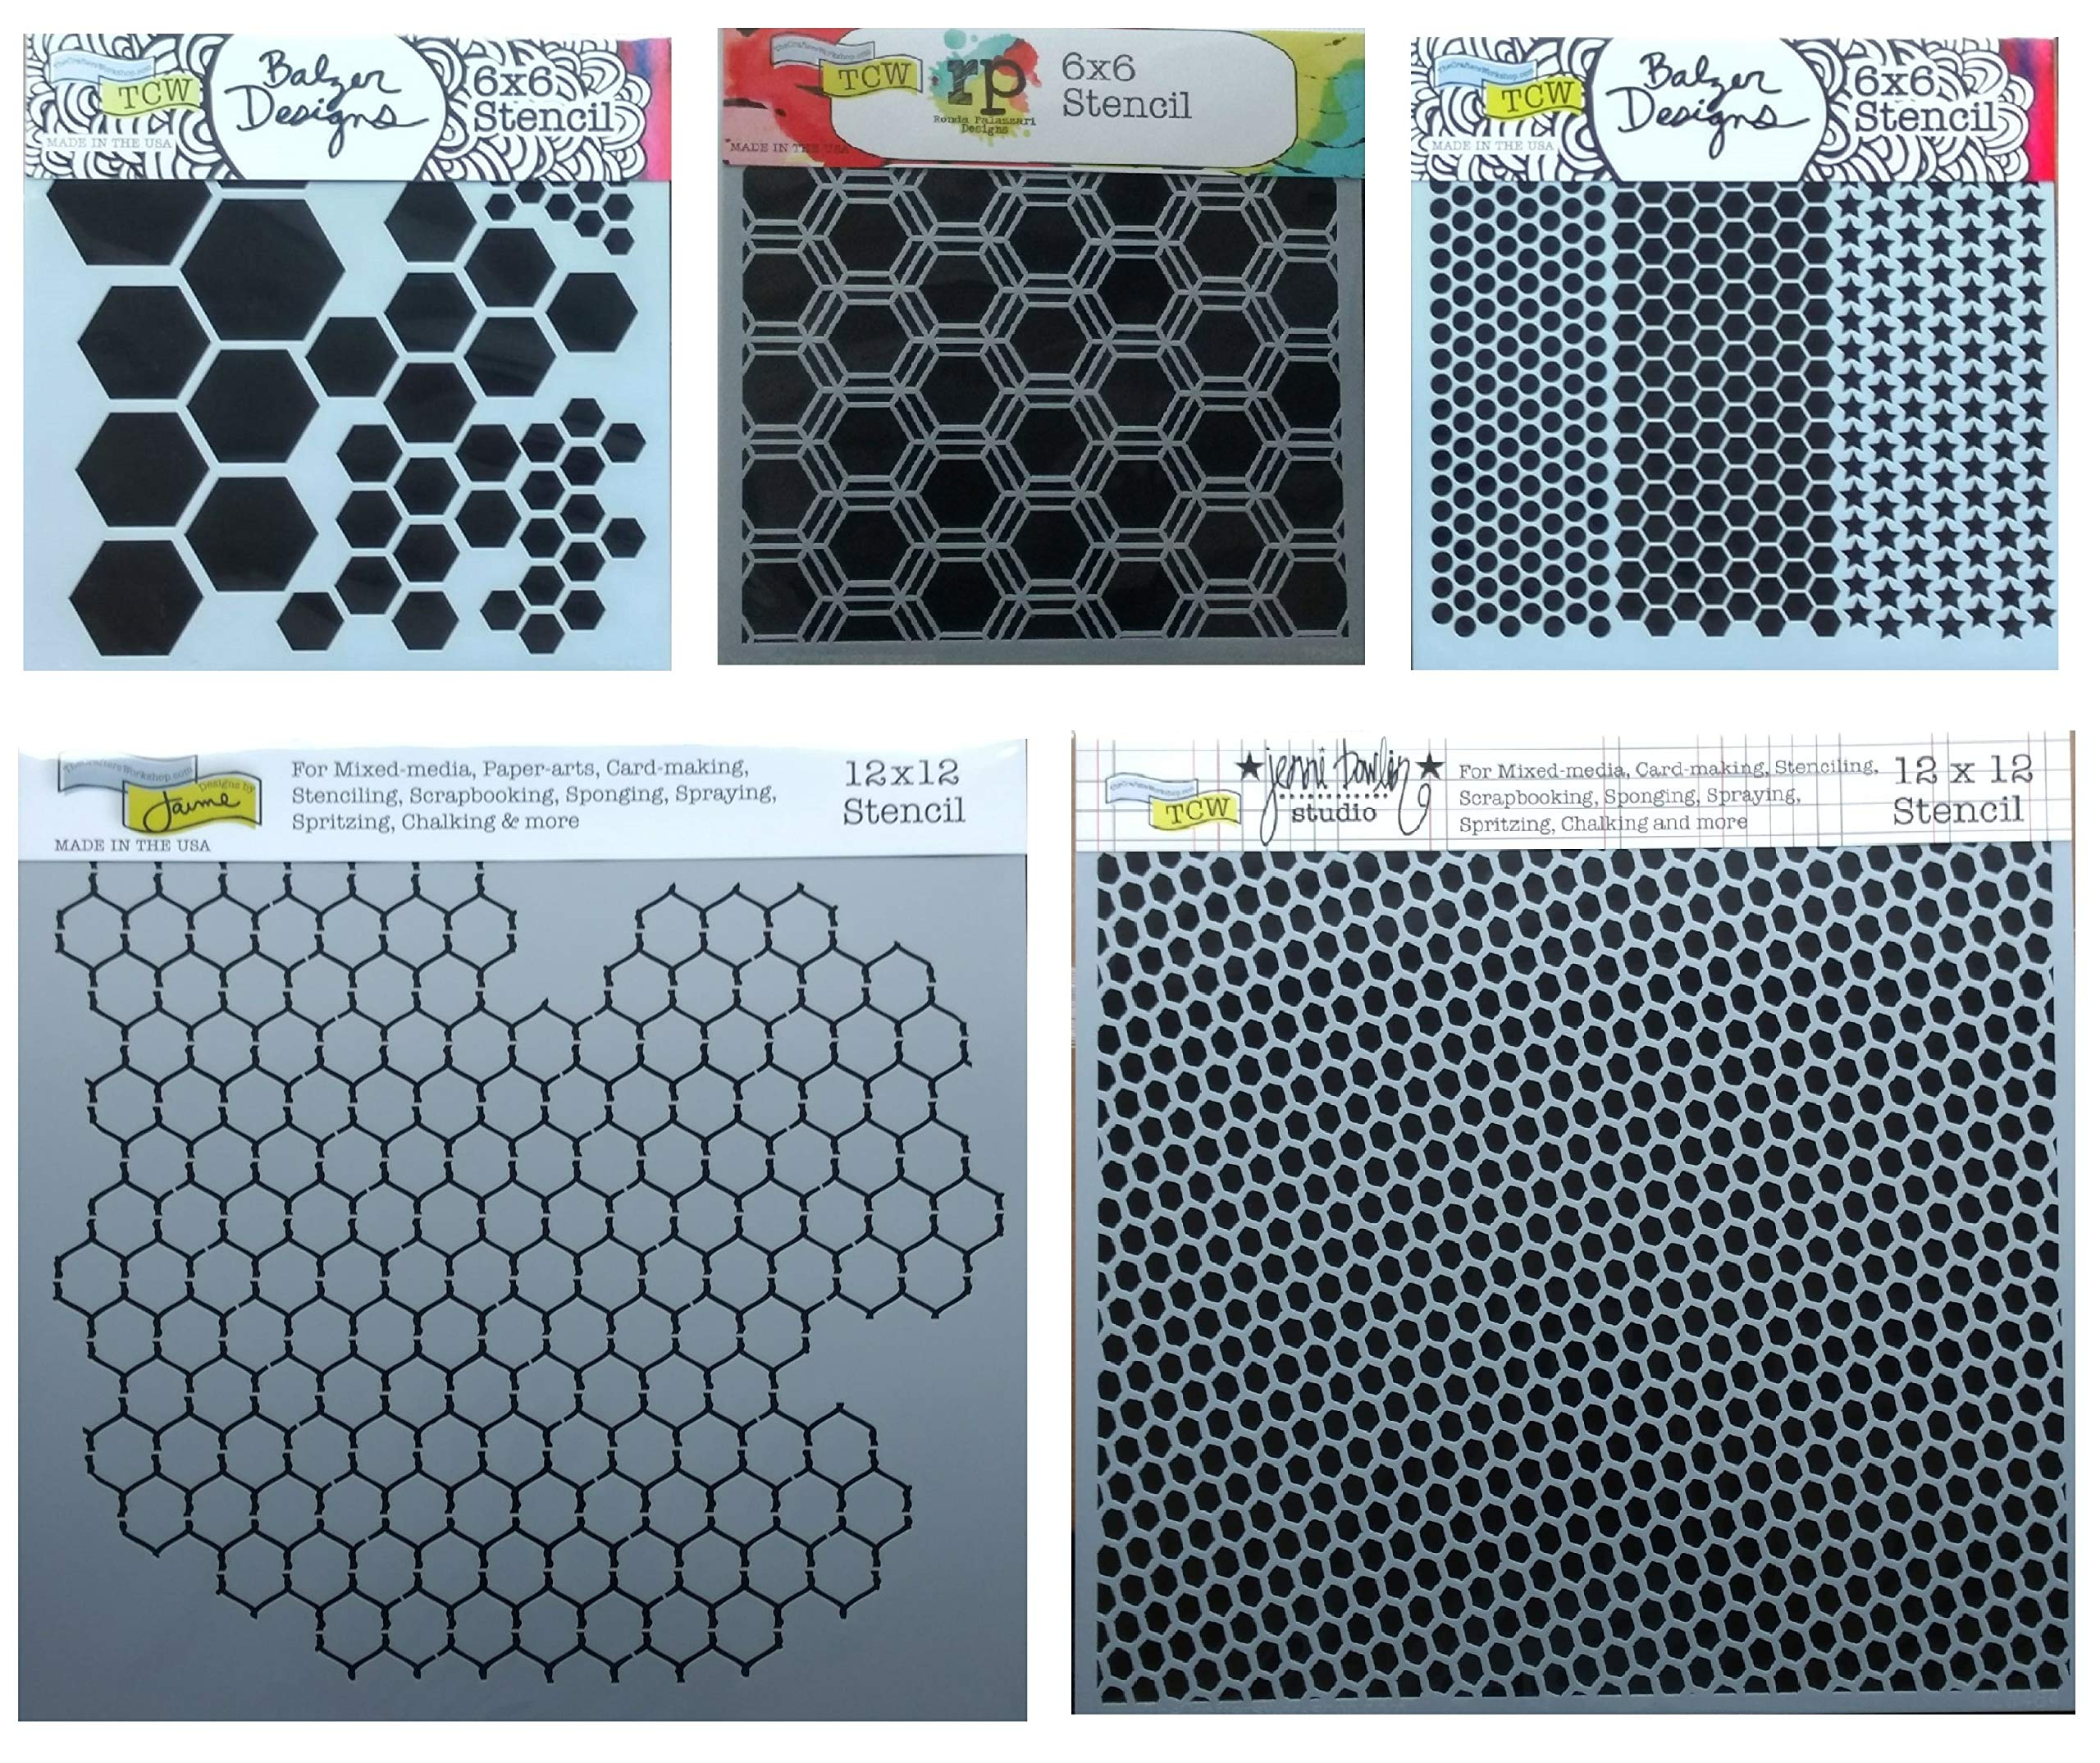 5 Mixed Media Stencils | Hexagon, Honeycomb, Chicken Wire, Fish Net, Punchinella Stencil Set | Templates for Arts, Card Making, Journaling, Scrapbooking | by Crafters Workshop by Generic